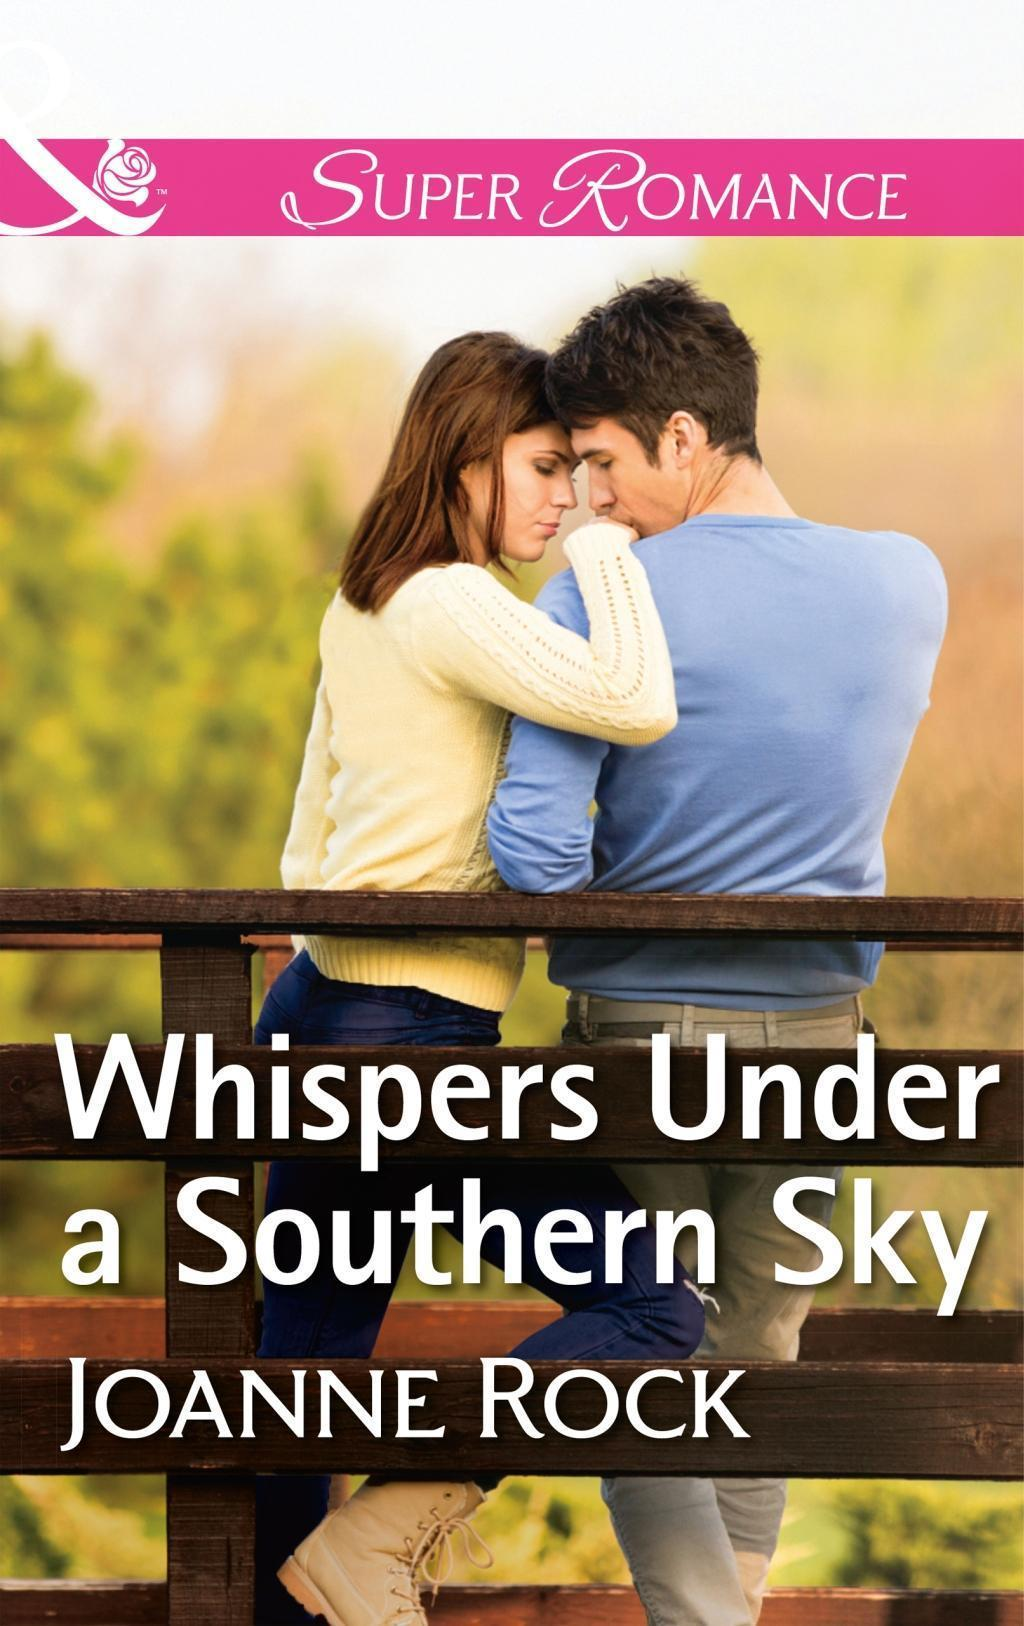 Whispers Under A Southern Sky (Mills & Boon Superromance) (Heartache, TN, Book 4)